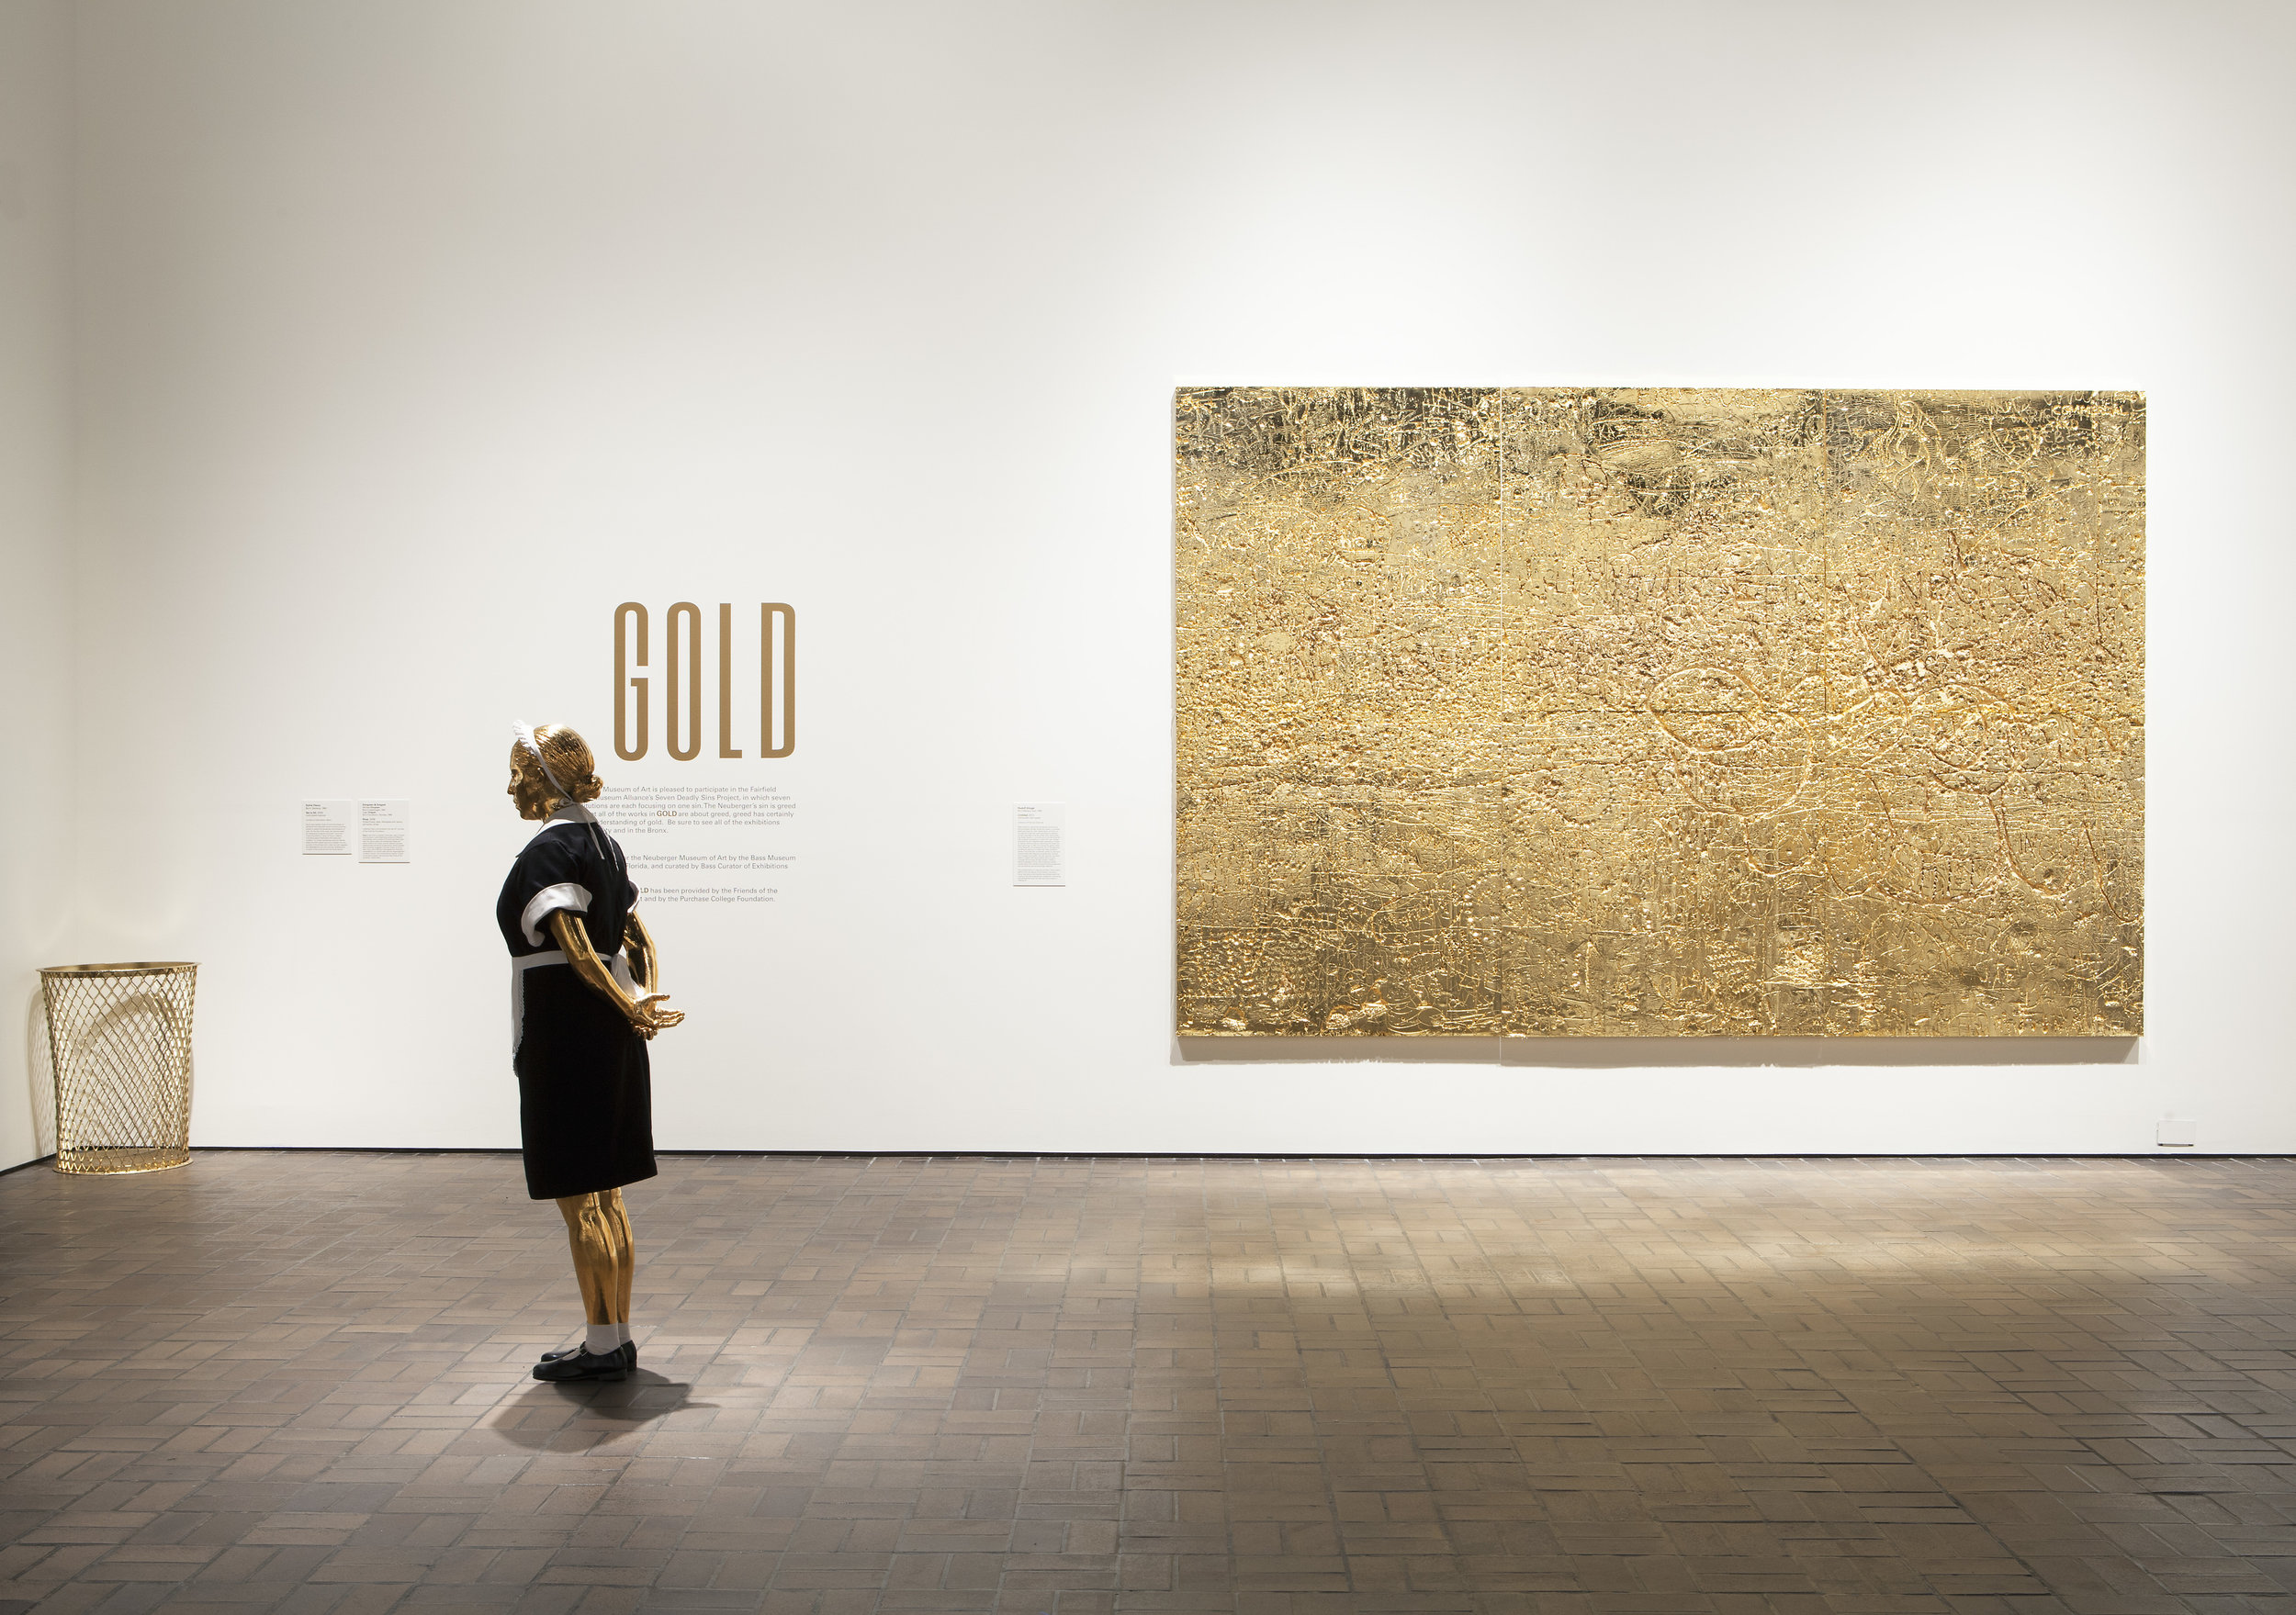 GOLD  exhibition at the Neuberger Museum of Art in Purchase, New York 2015. The show traveled to the Neuberger after headlining at The Bass Museum in Miami. Courtesy José Carlos Diaz